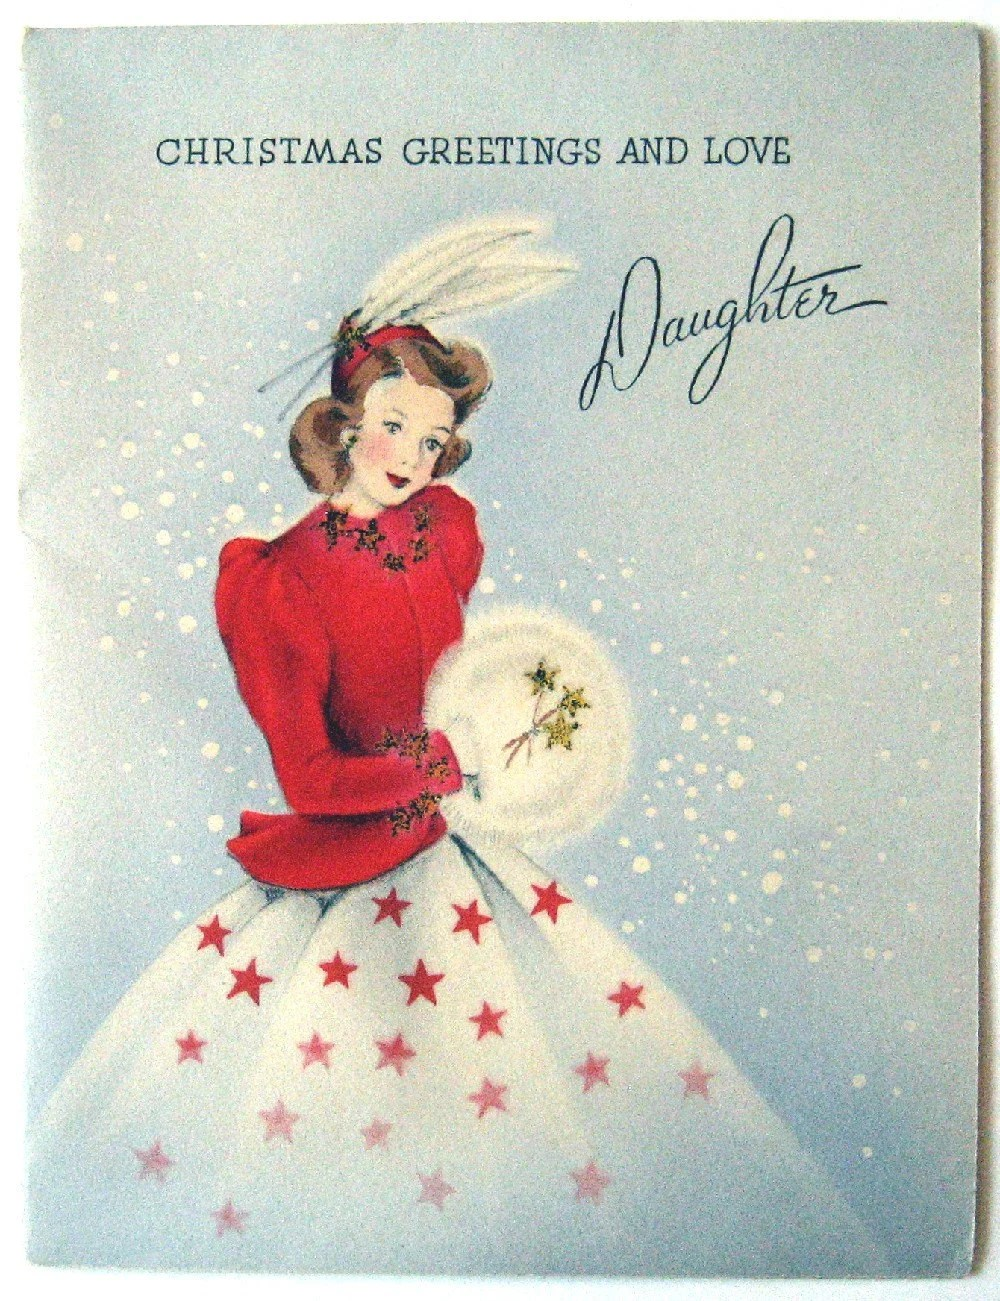 Vintage Card - Christmas Greetings and Love Daughter